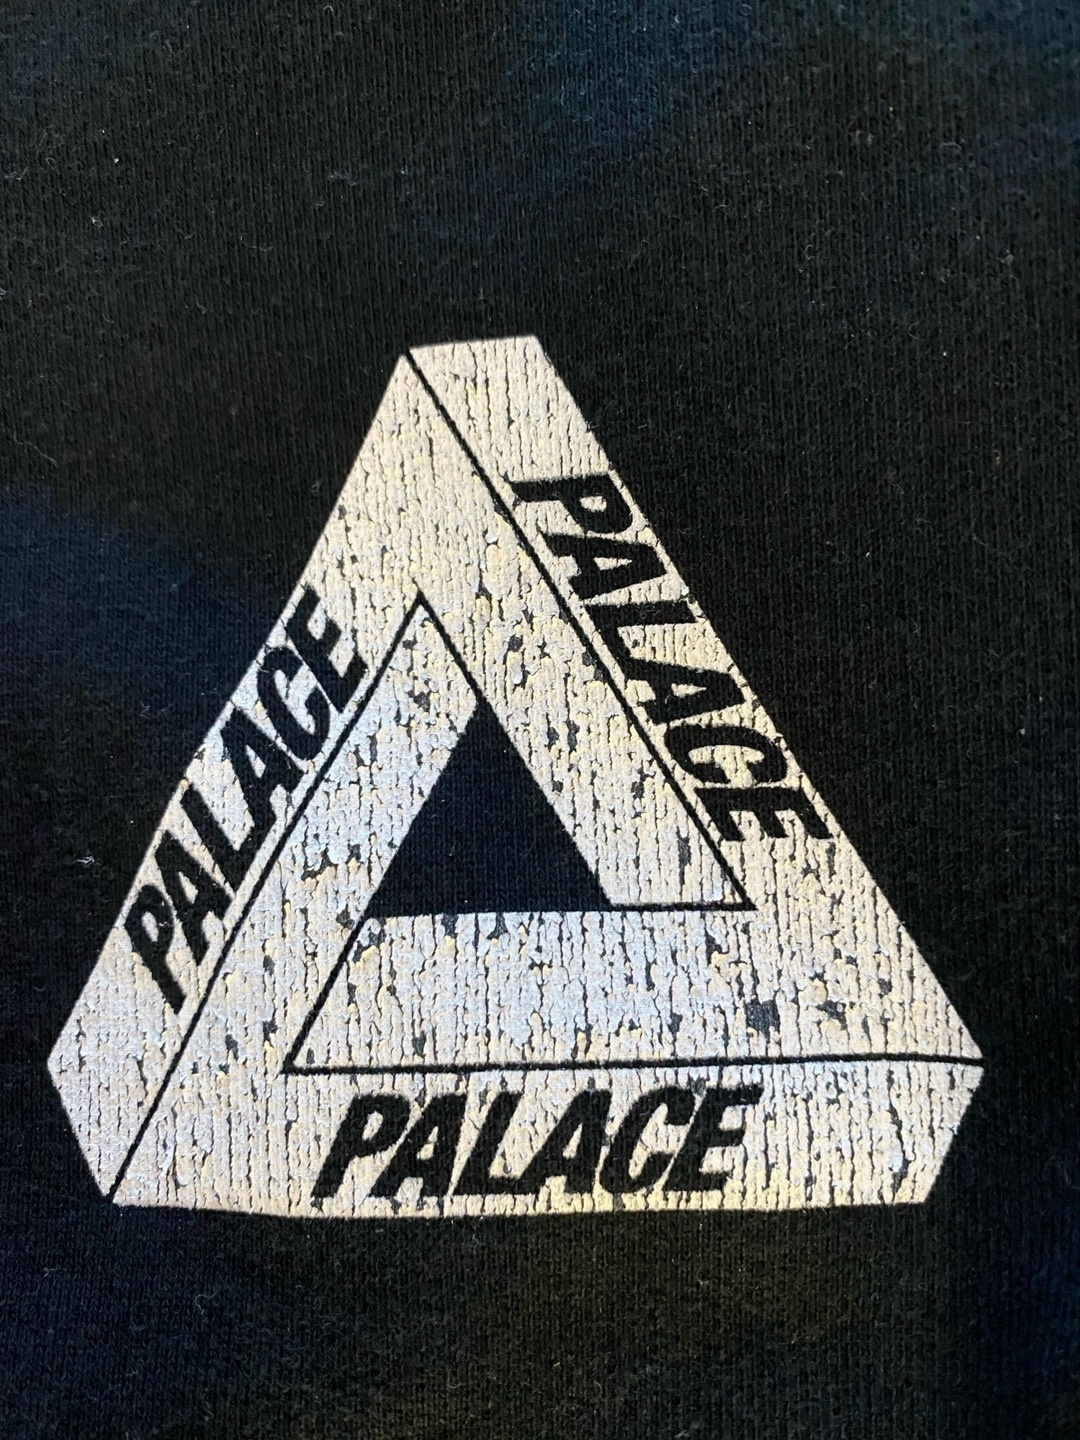 Women's hoodies & sweatshirts - PALACE photo 3